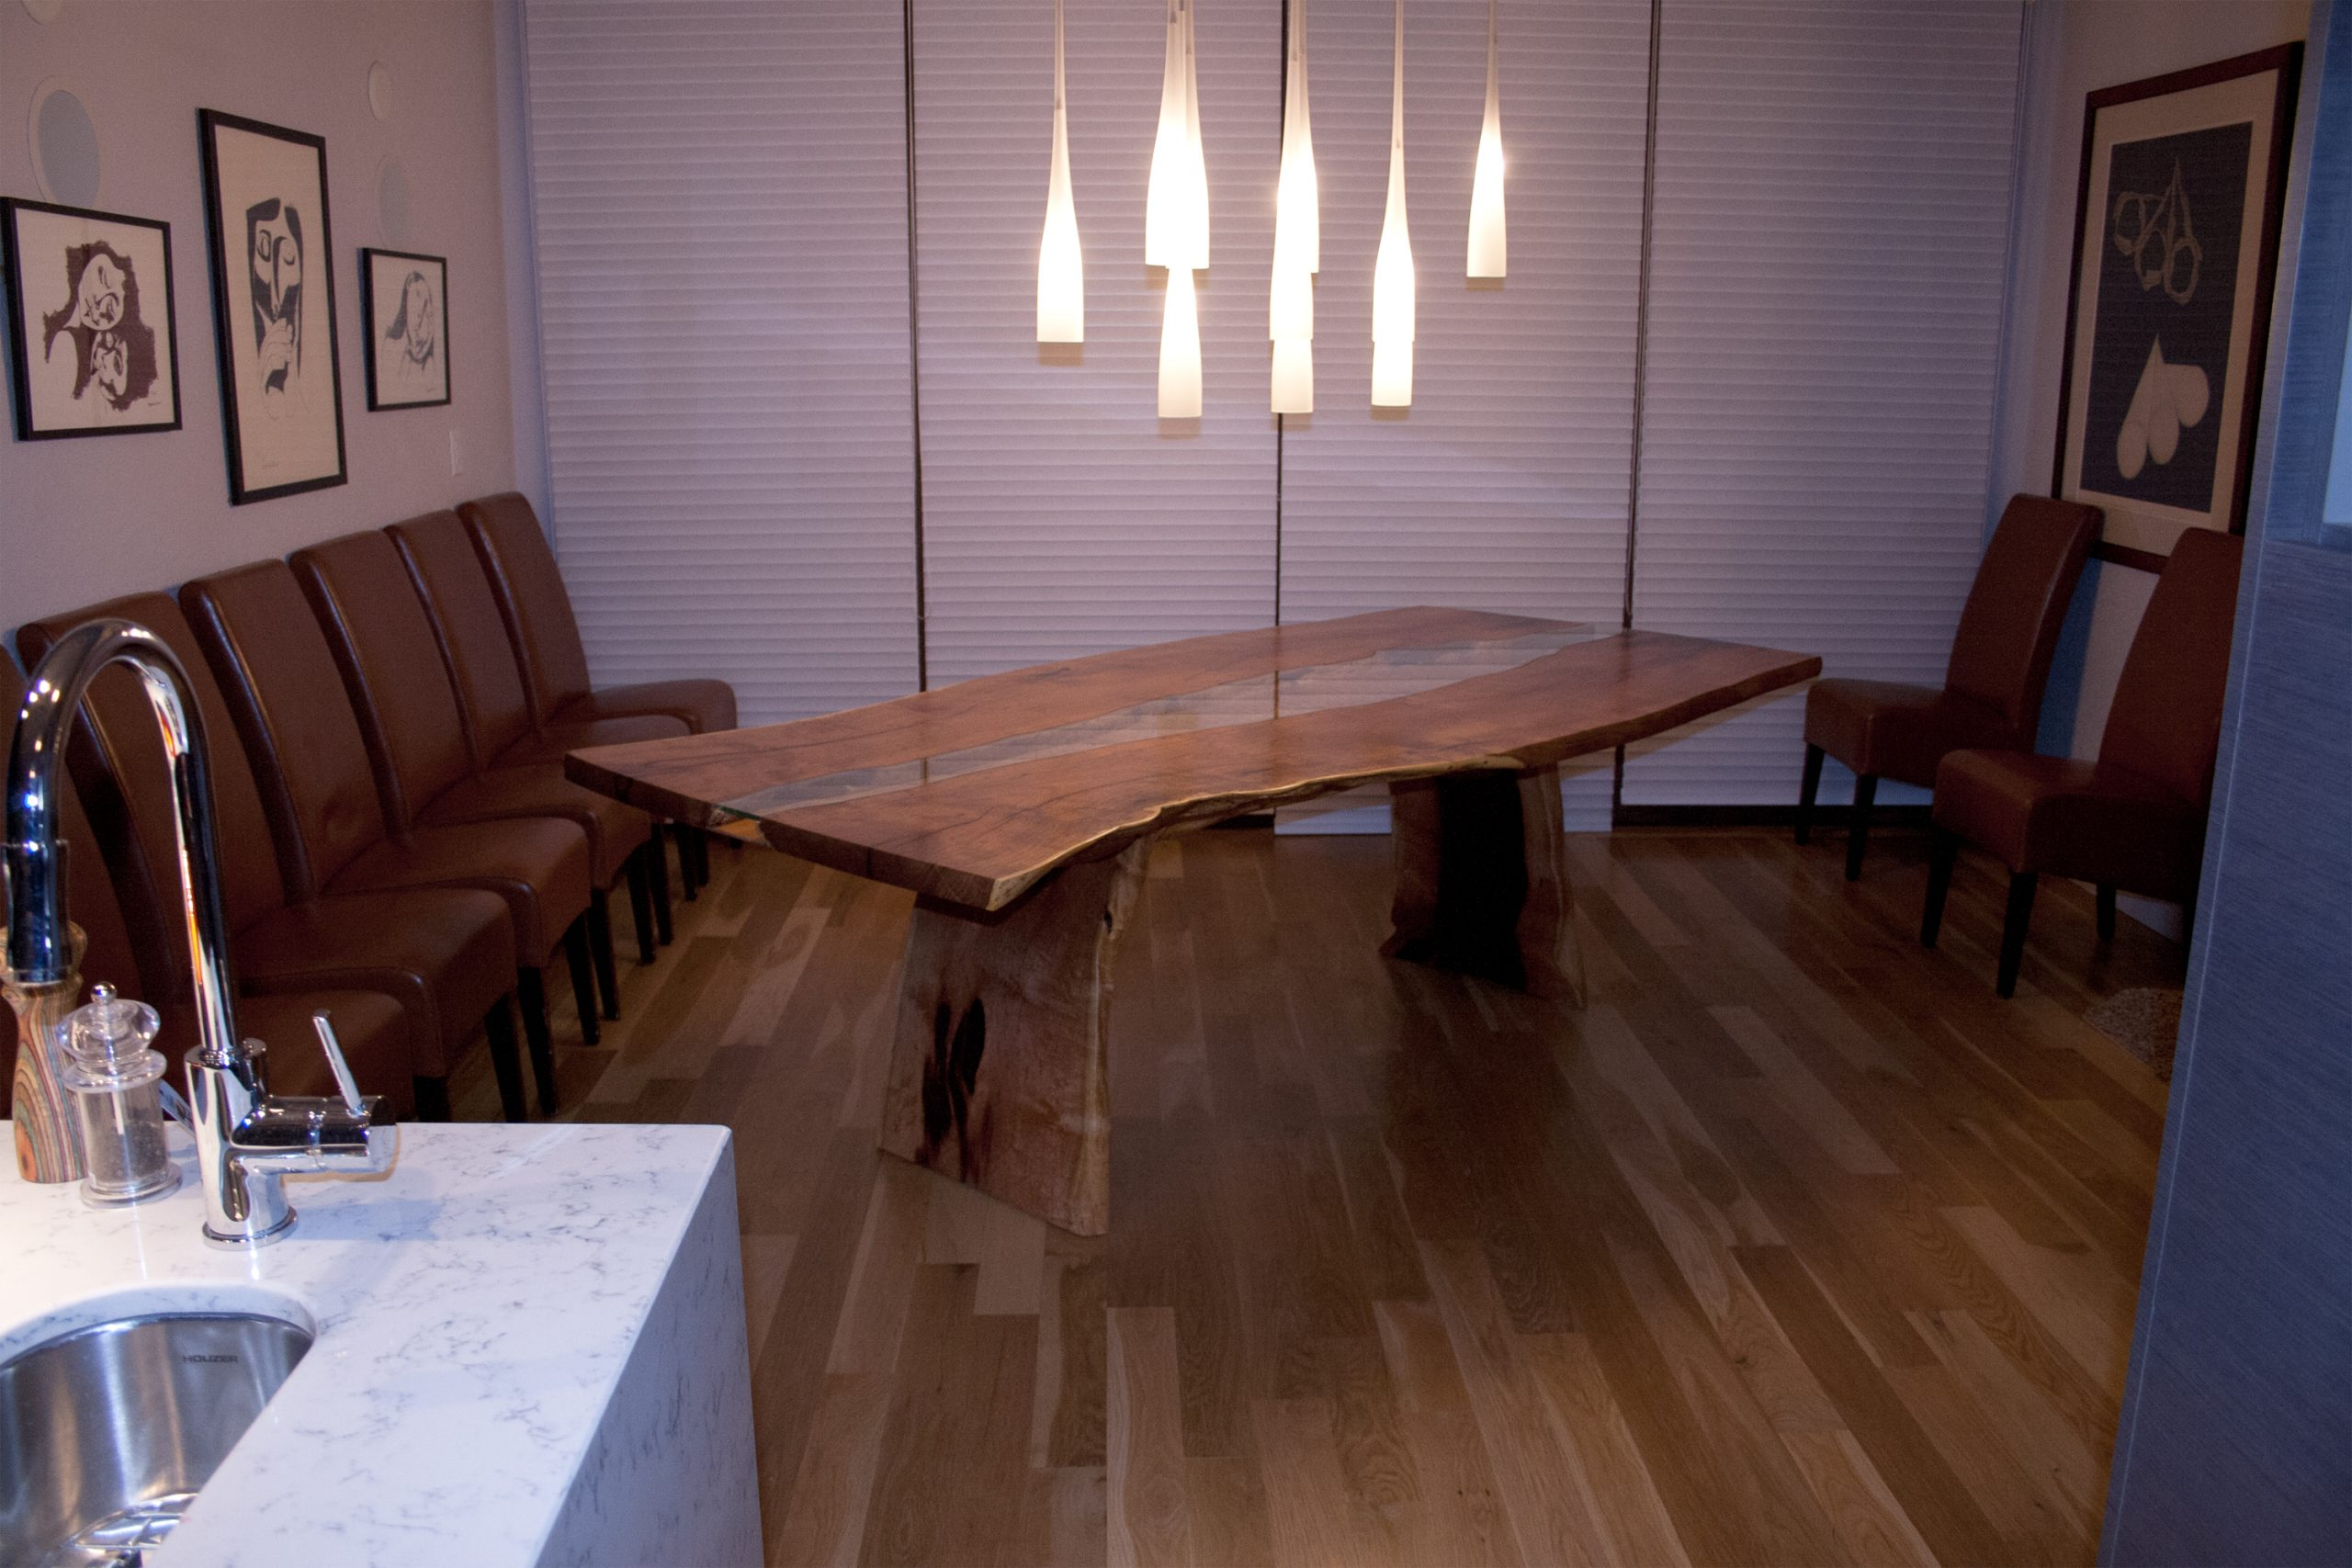 Mesquite Slab Dining Table